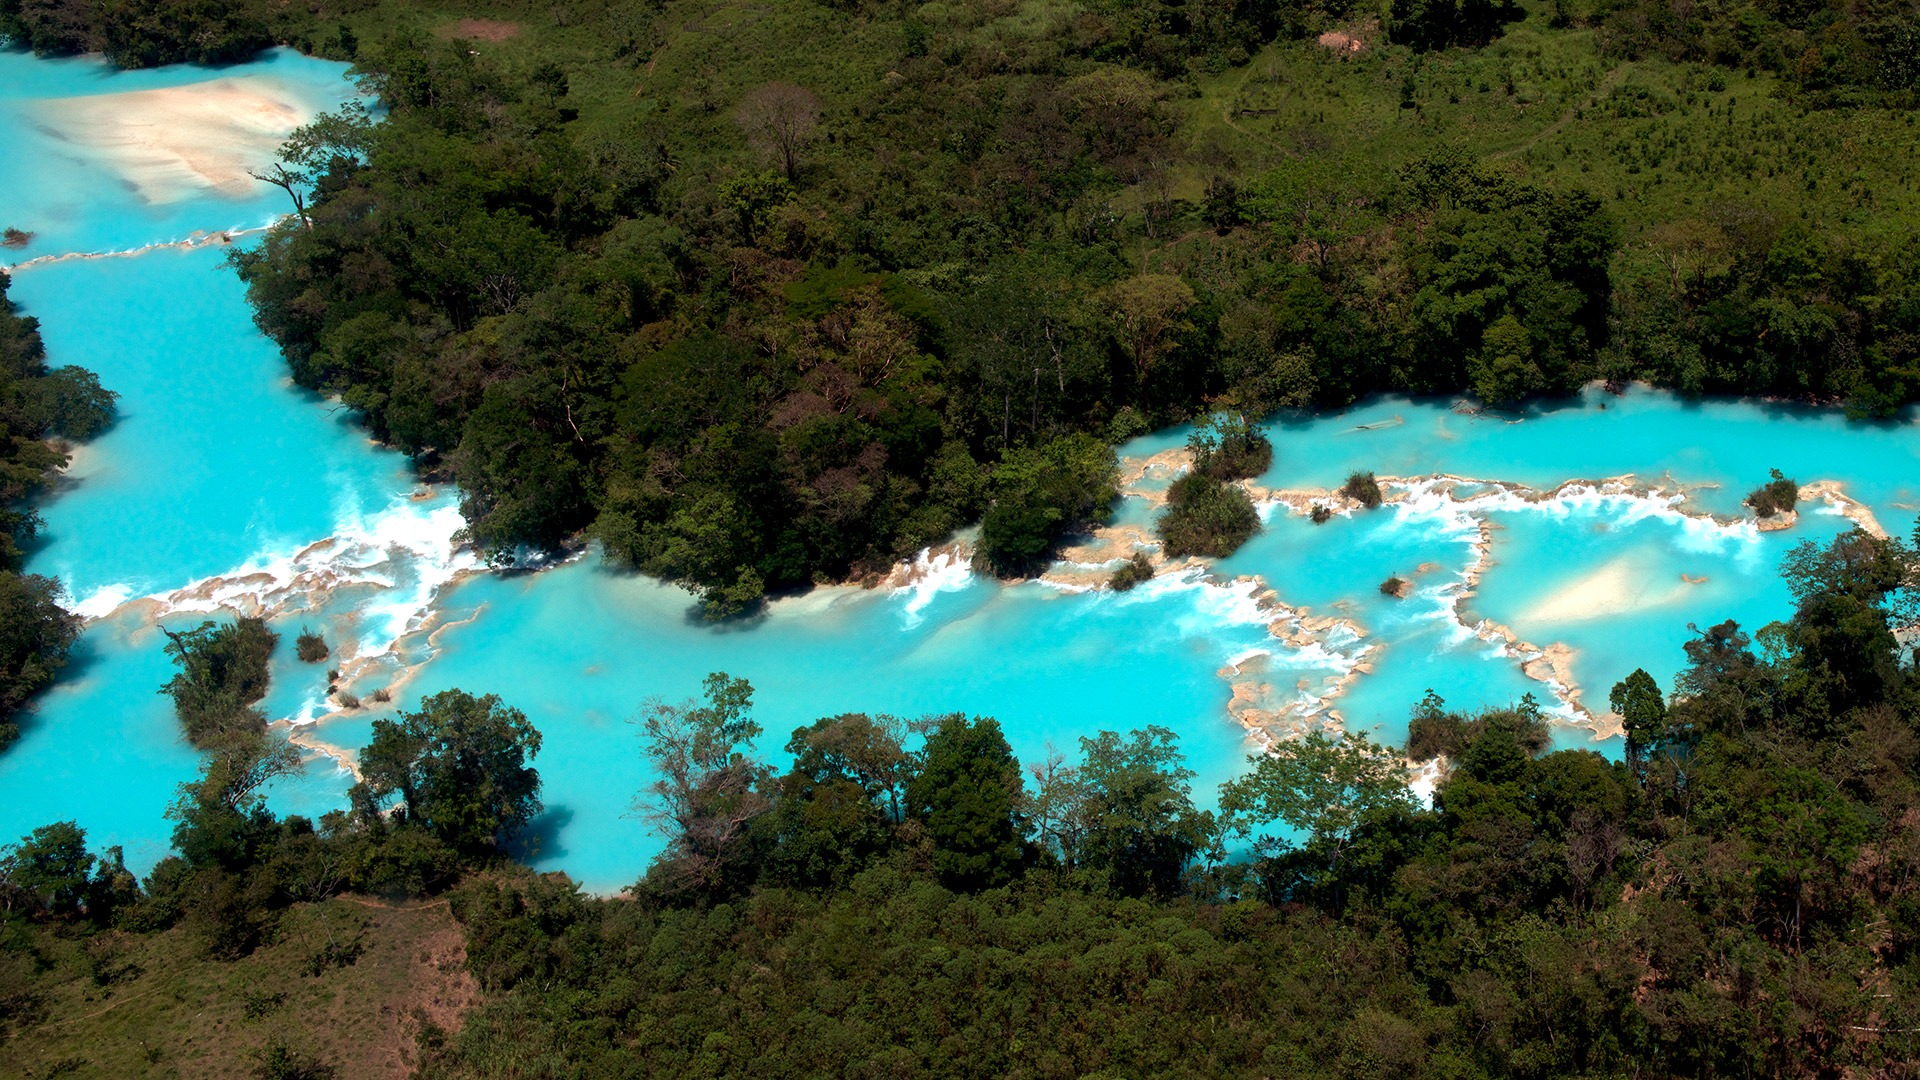 Turquoise waters of El Chiflon waterfall in Chiapas, Mexico